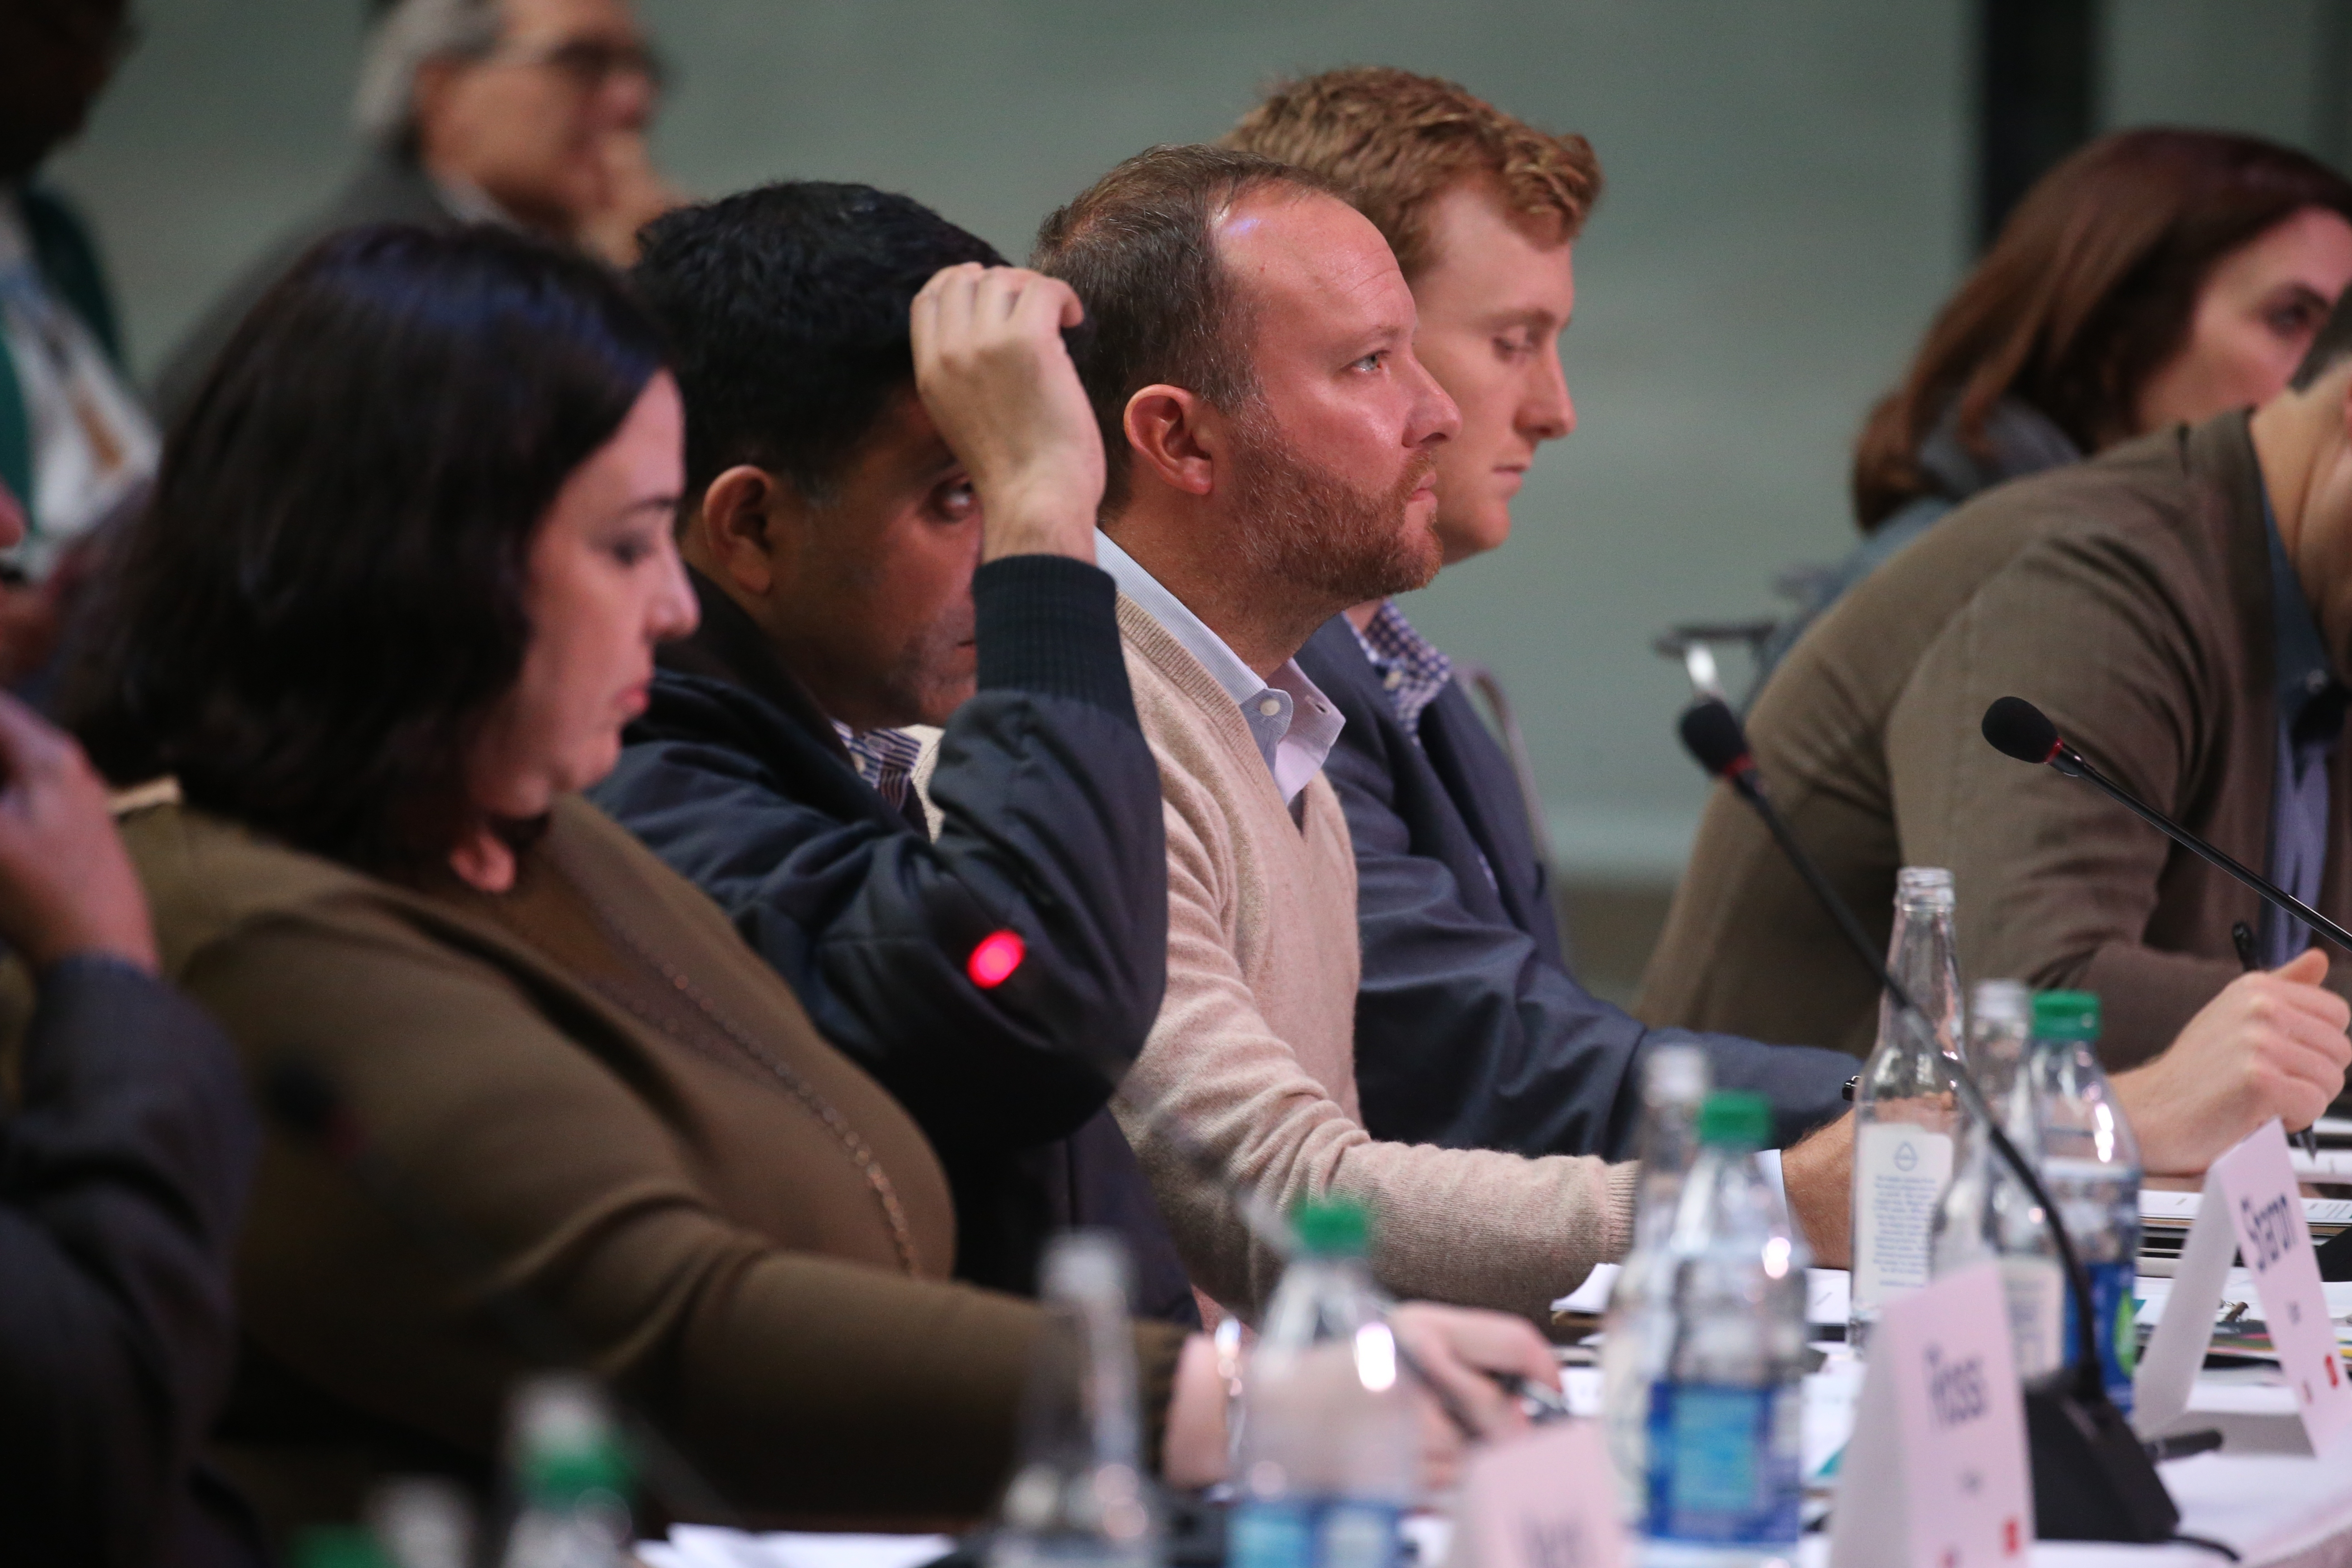 Judges listen to a pitch at the 43North Competition at Rich Atrium in October. (John Hickey/Buffalo News)